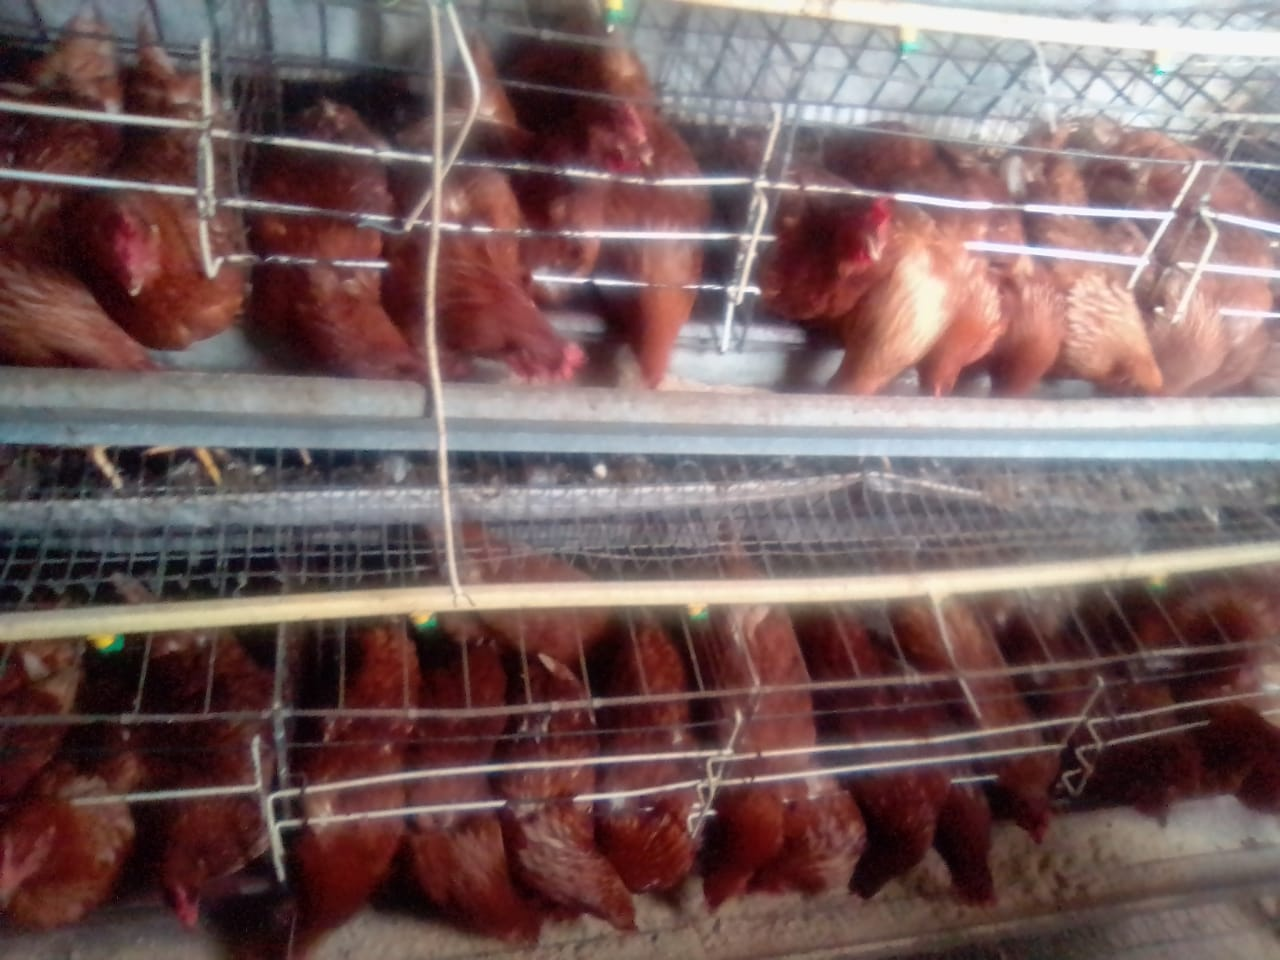 Layer cage with 197 (27 weeks old) Lohmann brown chickens.